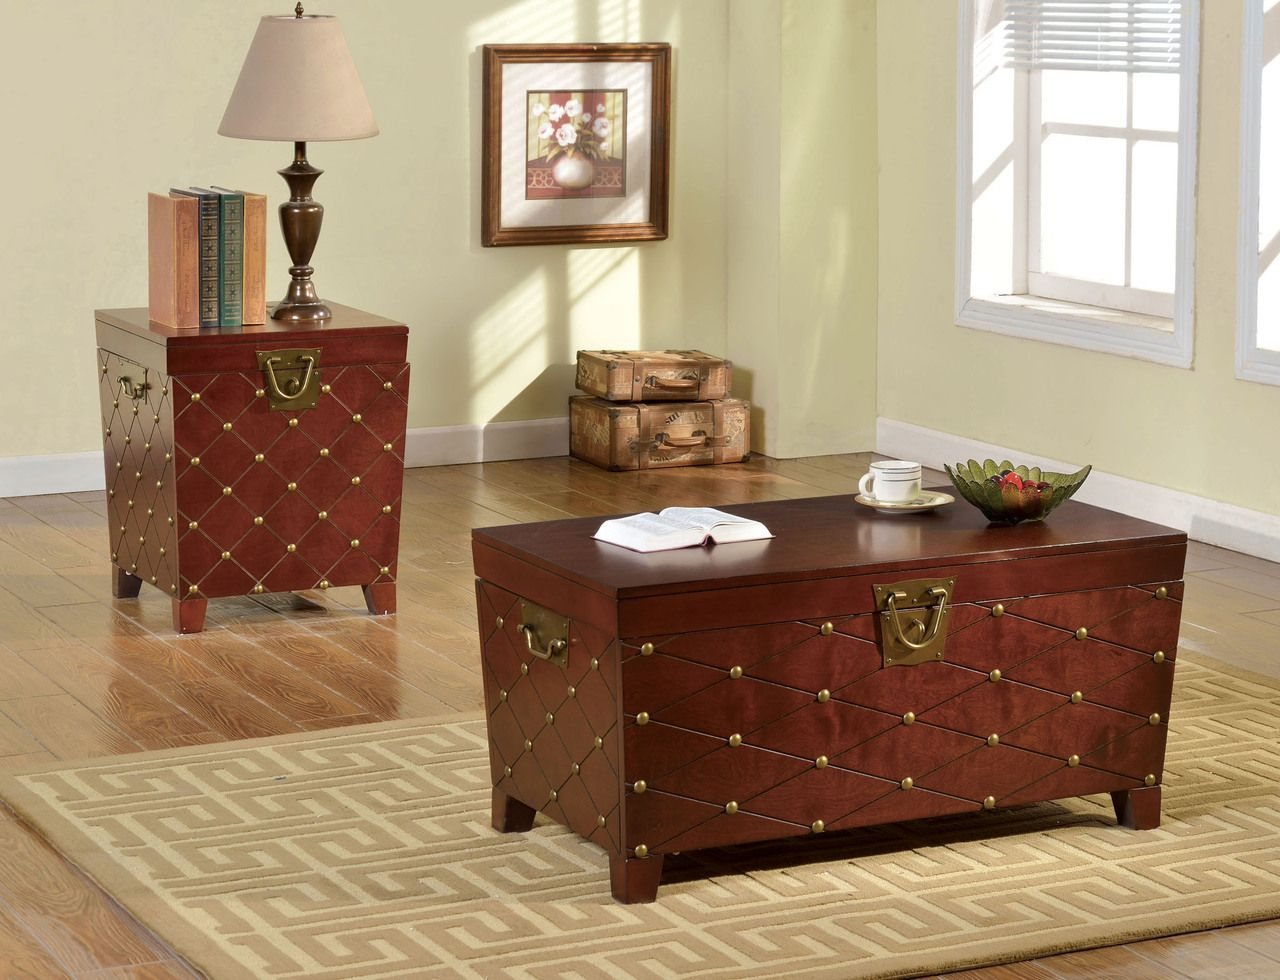 Stuart Cherry Trunk Inspired Coffee Table Coffee Table And Side Table Set Coffee Table Trunk Oak Coffee Table [ 980 x 1280 Pixel ]